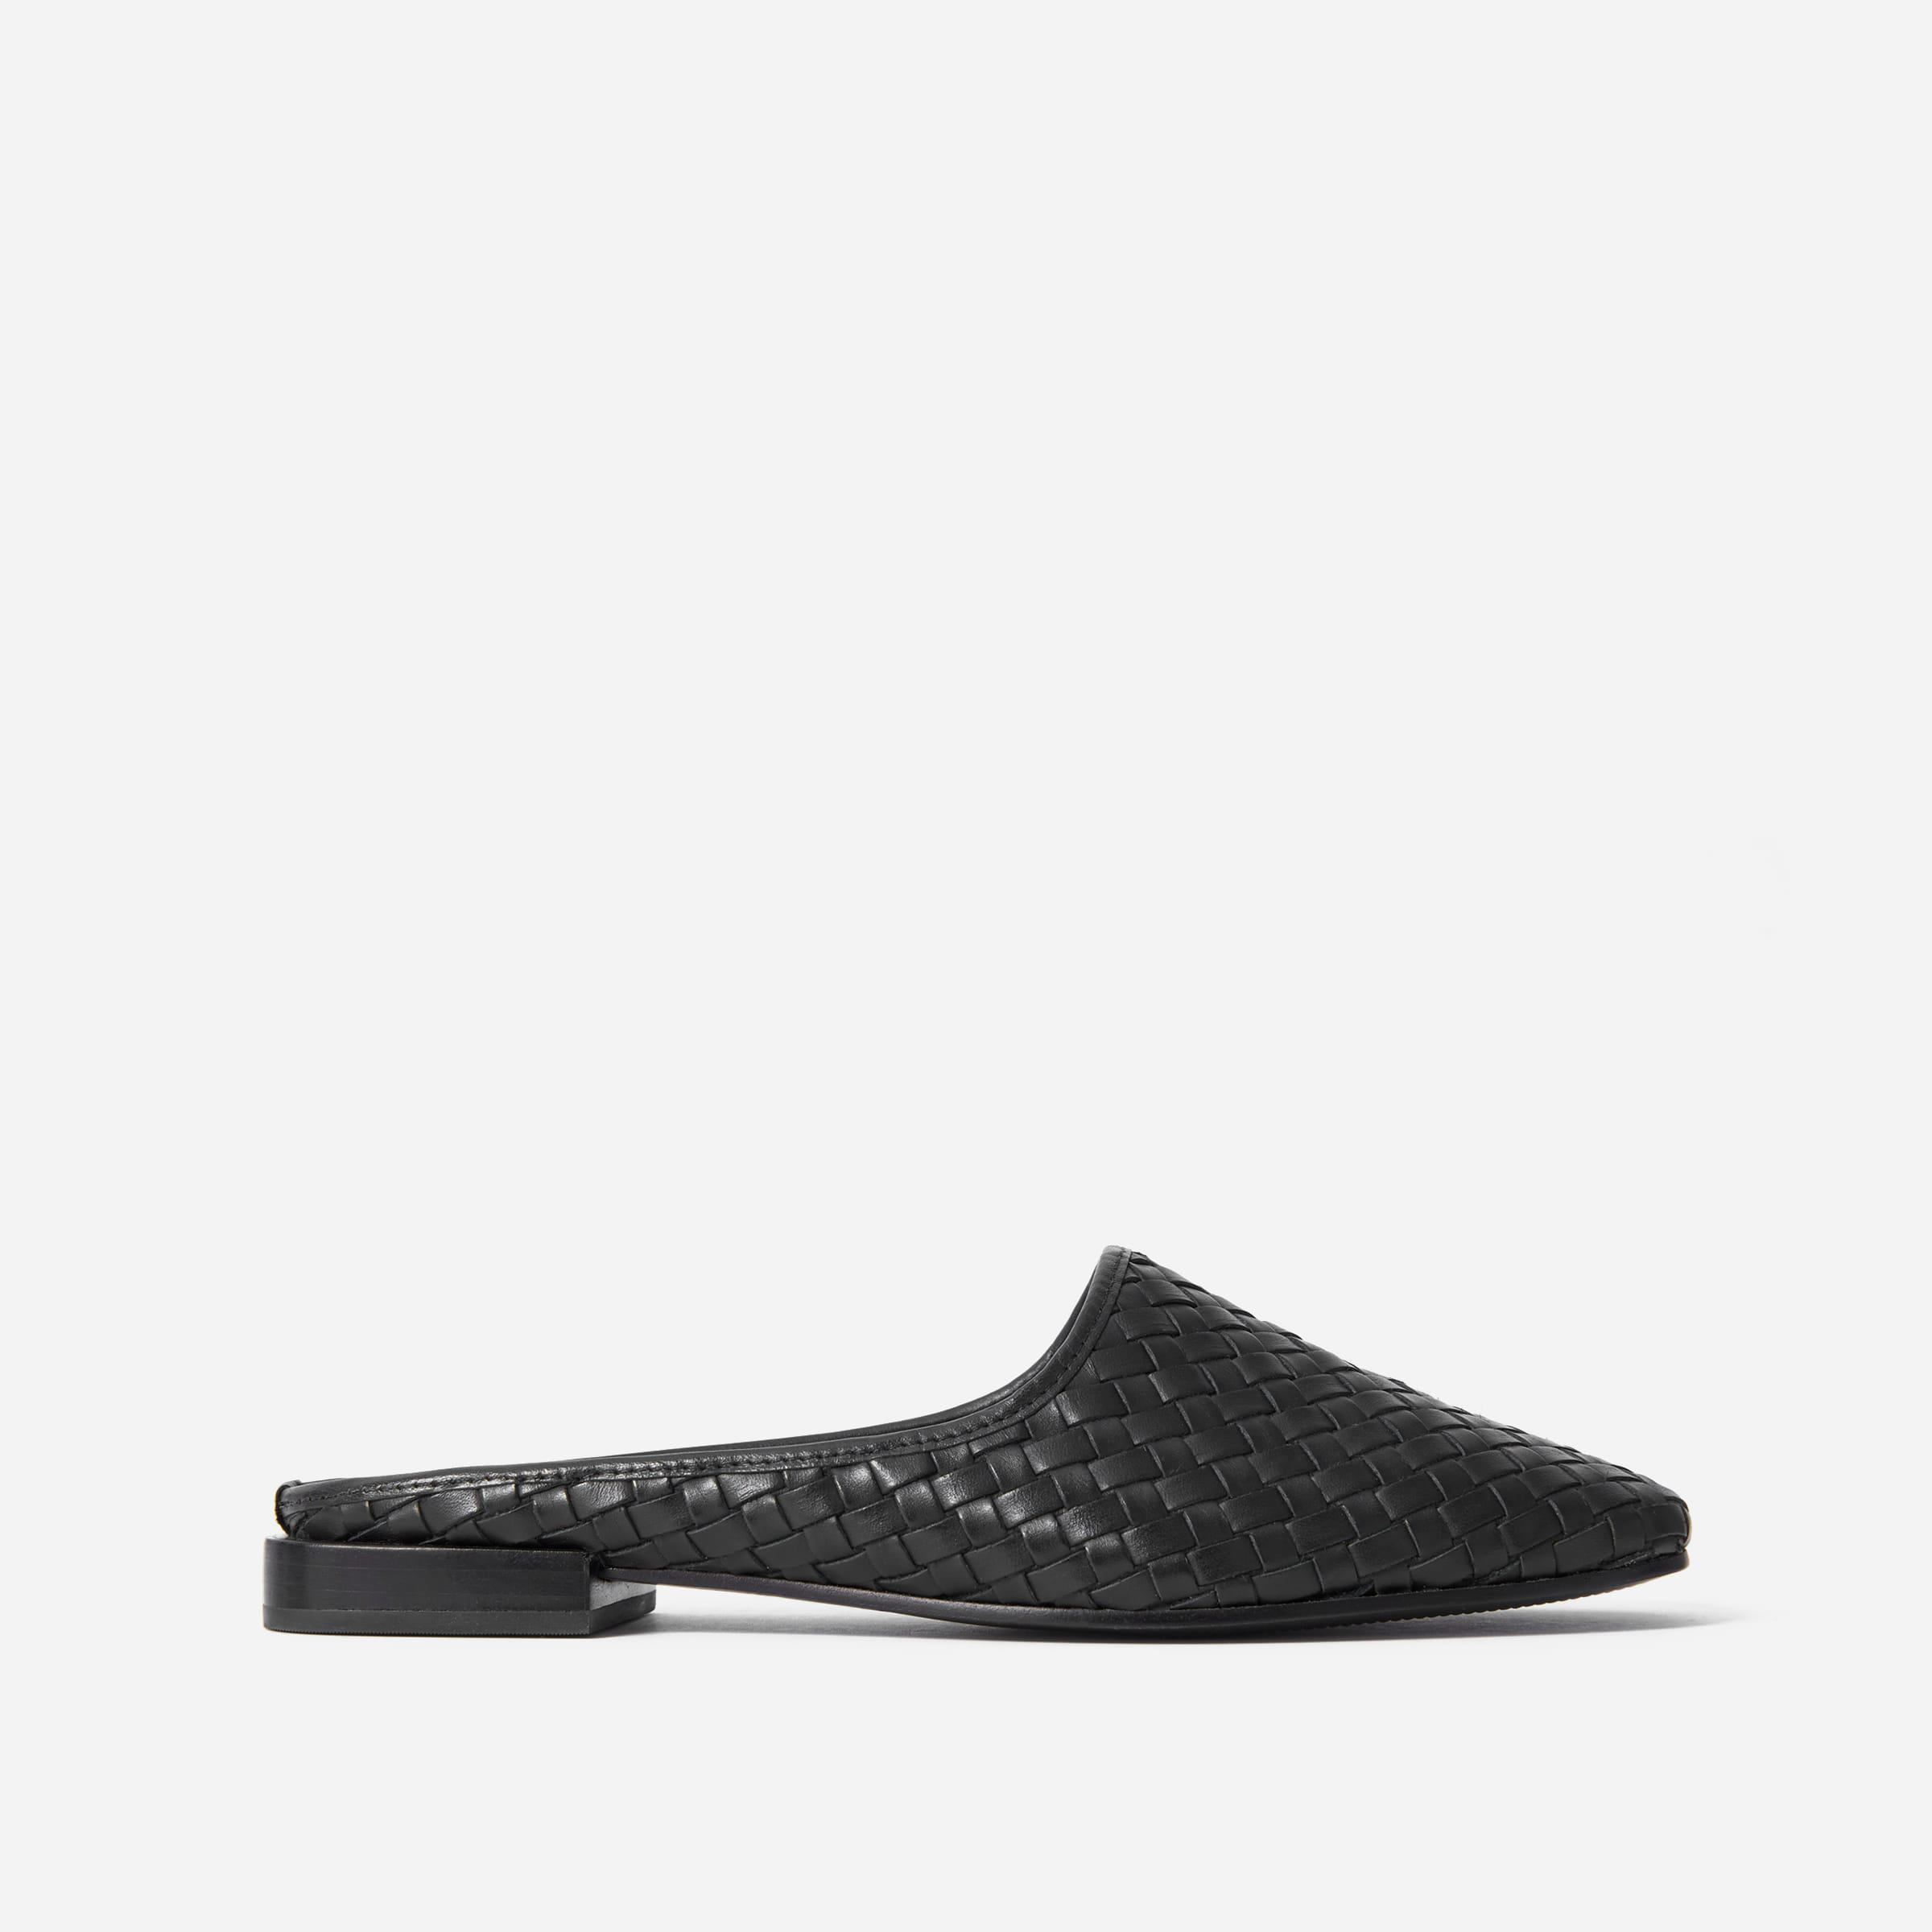 The Woven Leather Mule